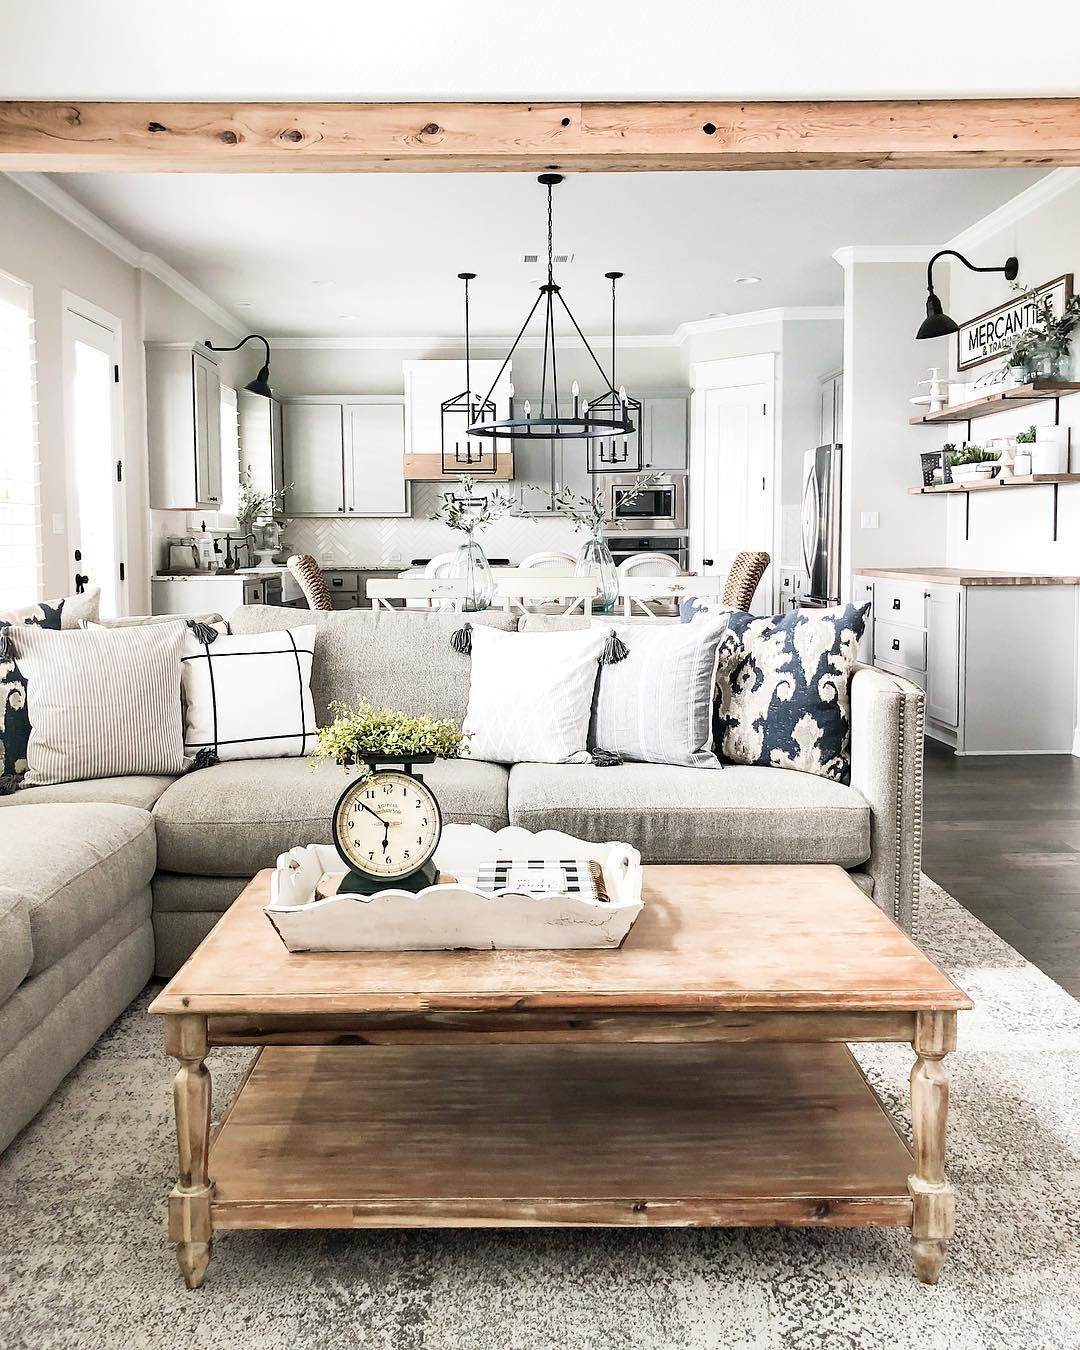 Manufactured Home Decorating Ideas Modern Country And Industrial: Modern Farmhouse Living Room, Farm House Living